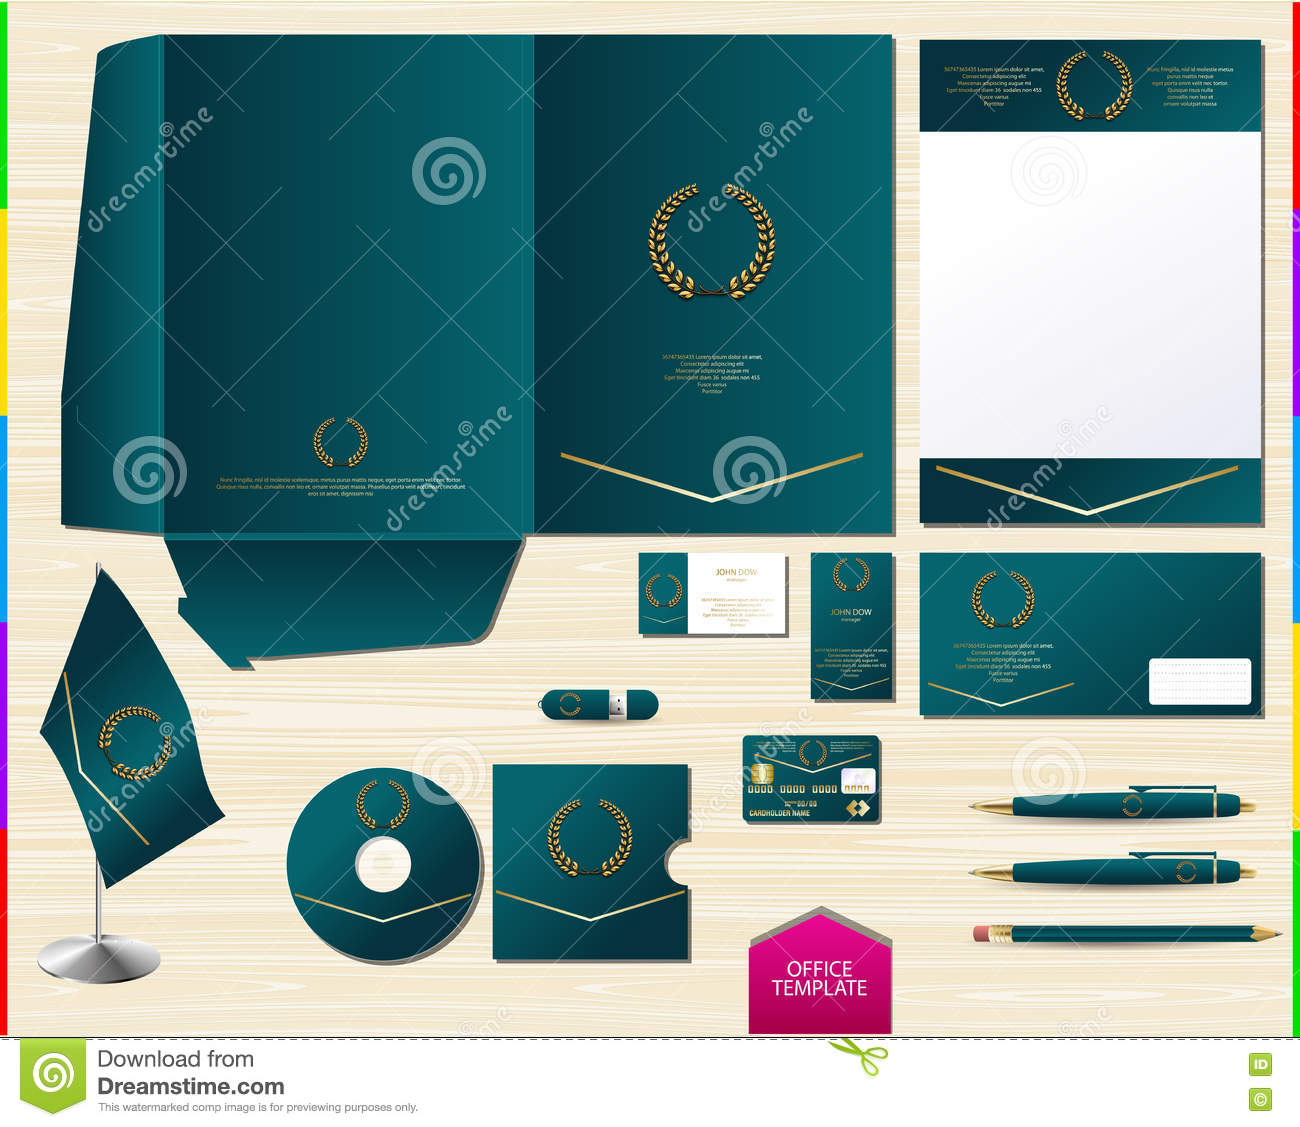 microsoft office cookbook template - vector royal turquoise corporate id brand book template